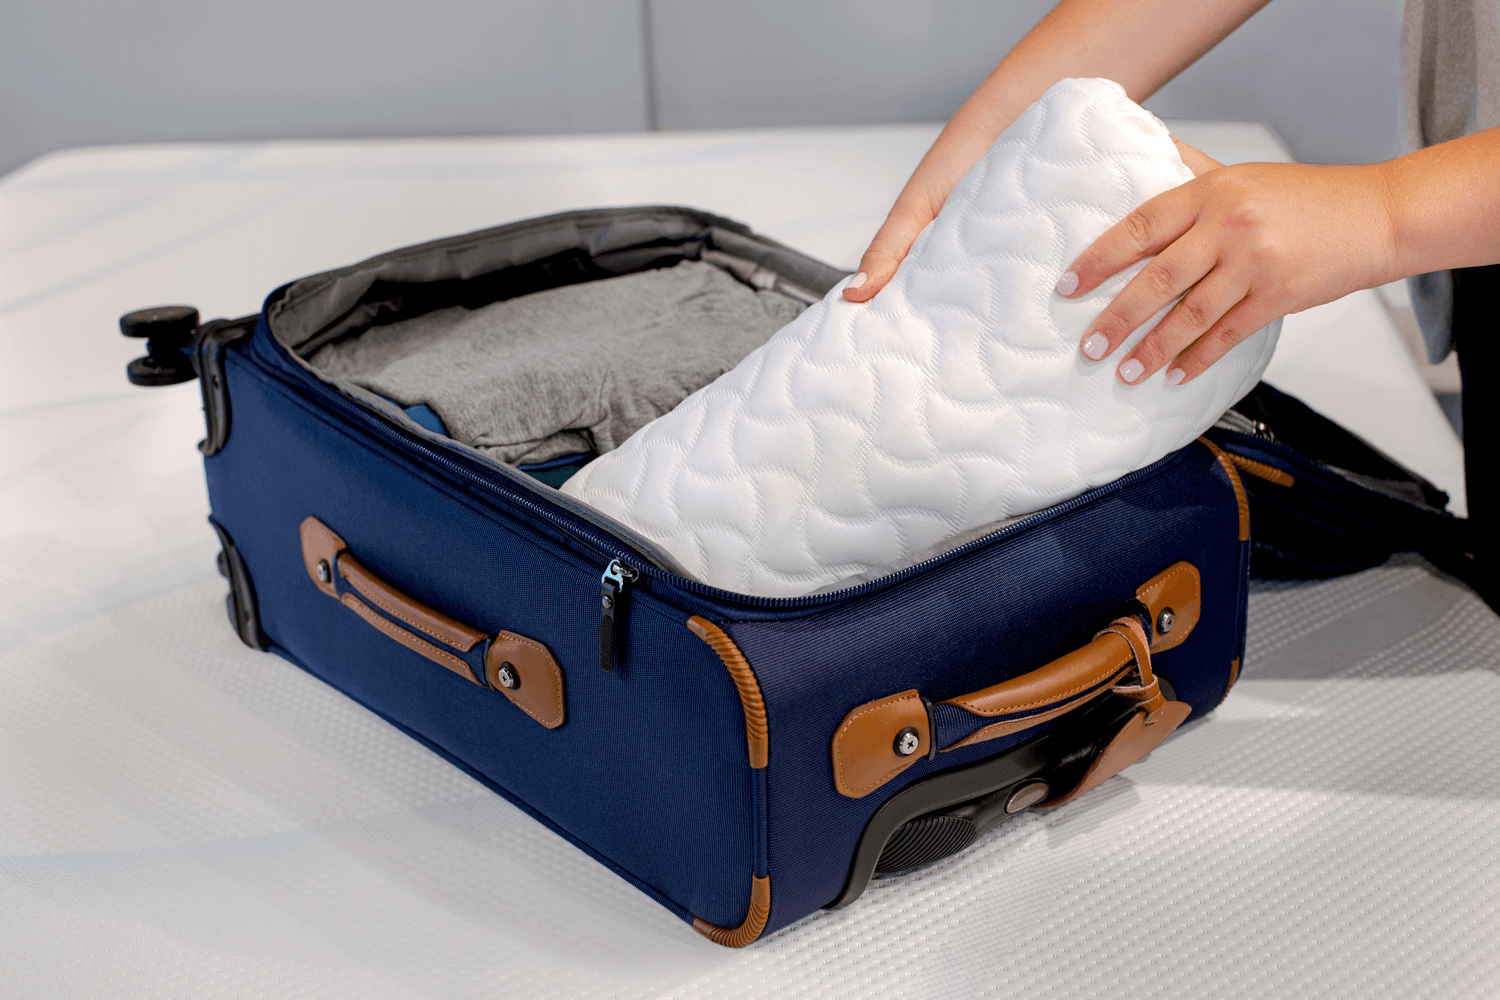 A rolled Tempur-Cloud pillow being packed into a travel bag